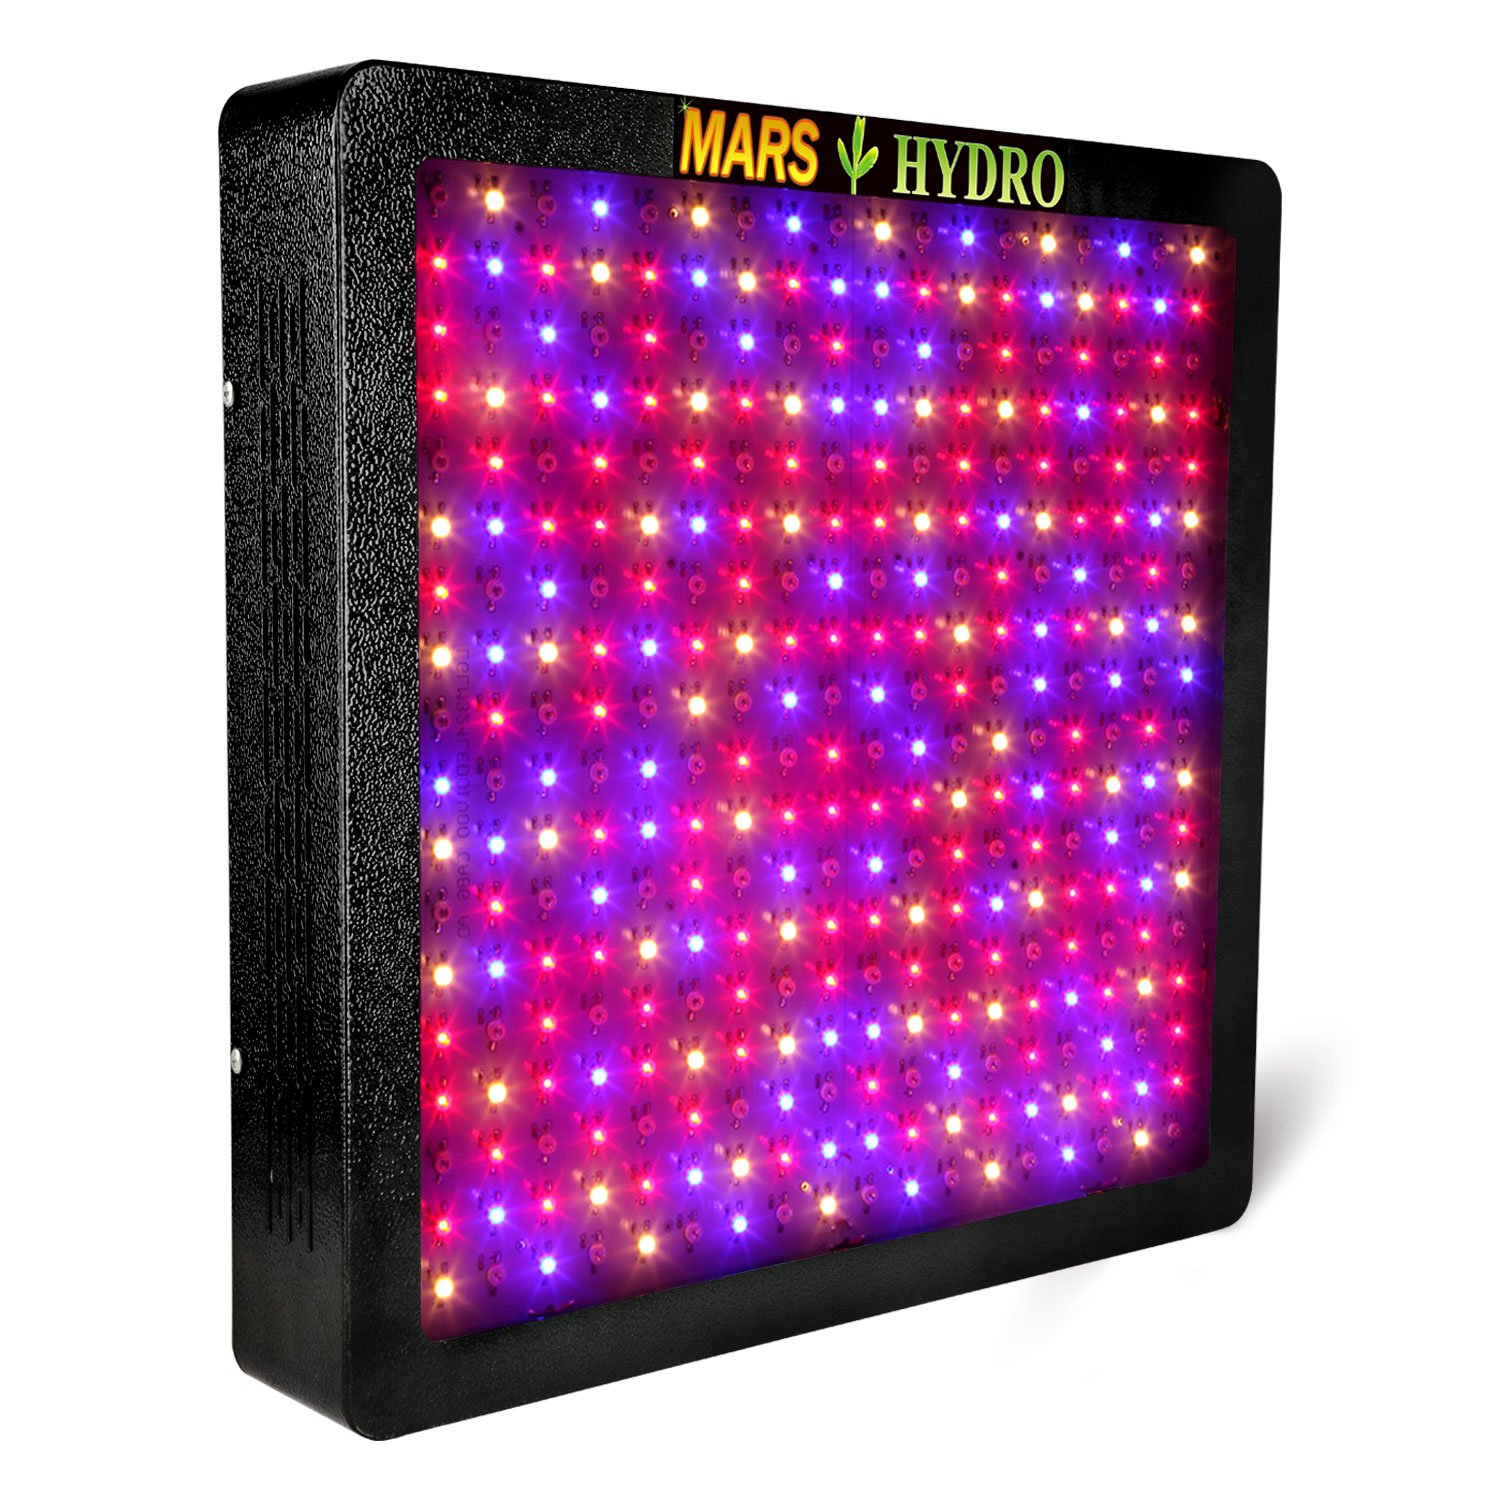 Led Grow Light,MARS HYDRO Full Spectrum Grow Lights for Greenhouse Indoor Plants Veg and Flower,Growing Light Bulbs for Hydroponics (MarsII 1600 W) by MarsHydro